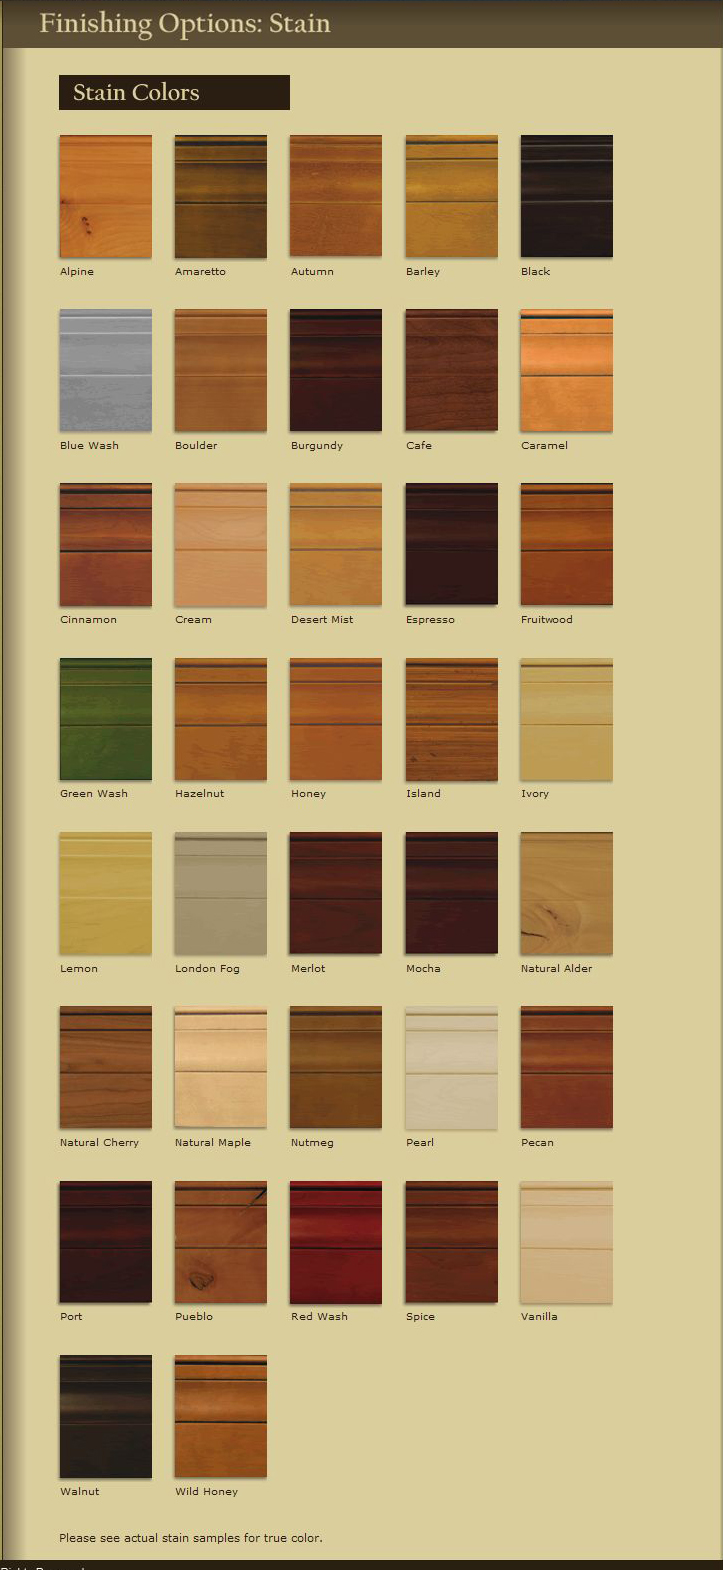 finishingoptionsstain staining kitchen cabinets kitchen cabinets stain colors